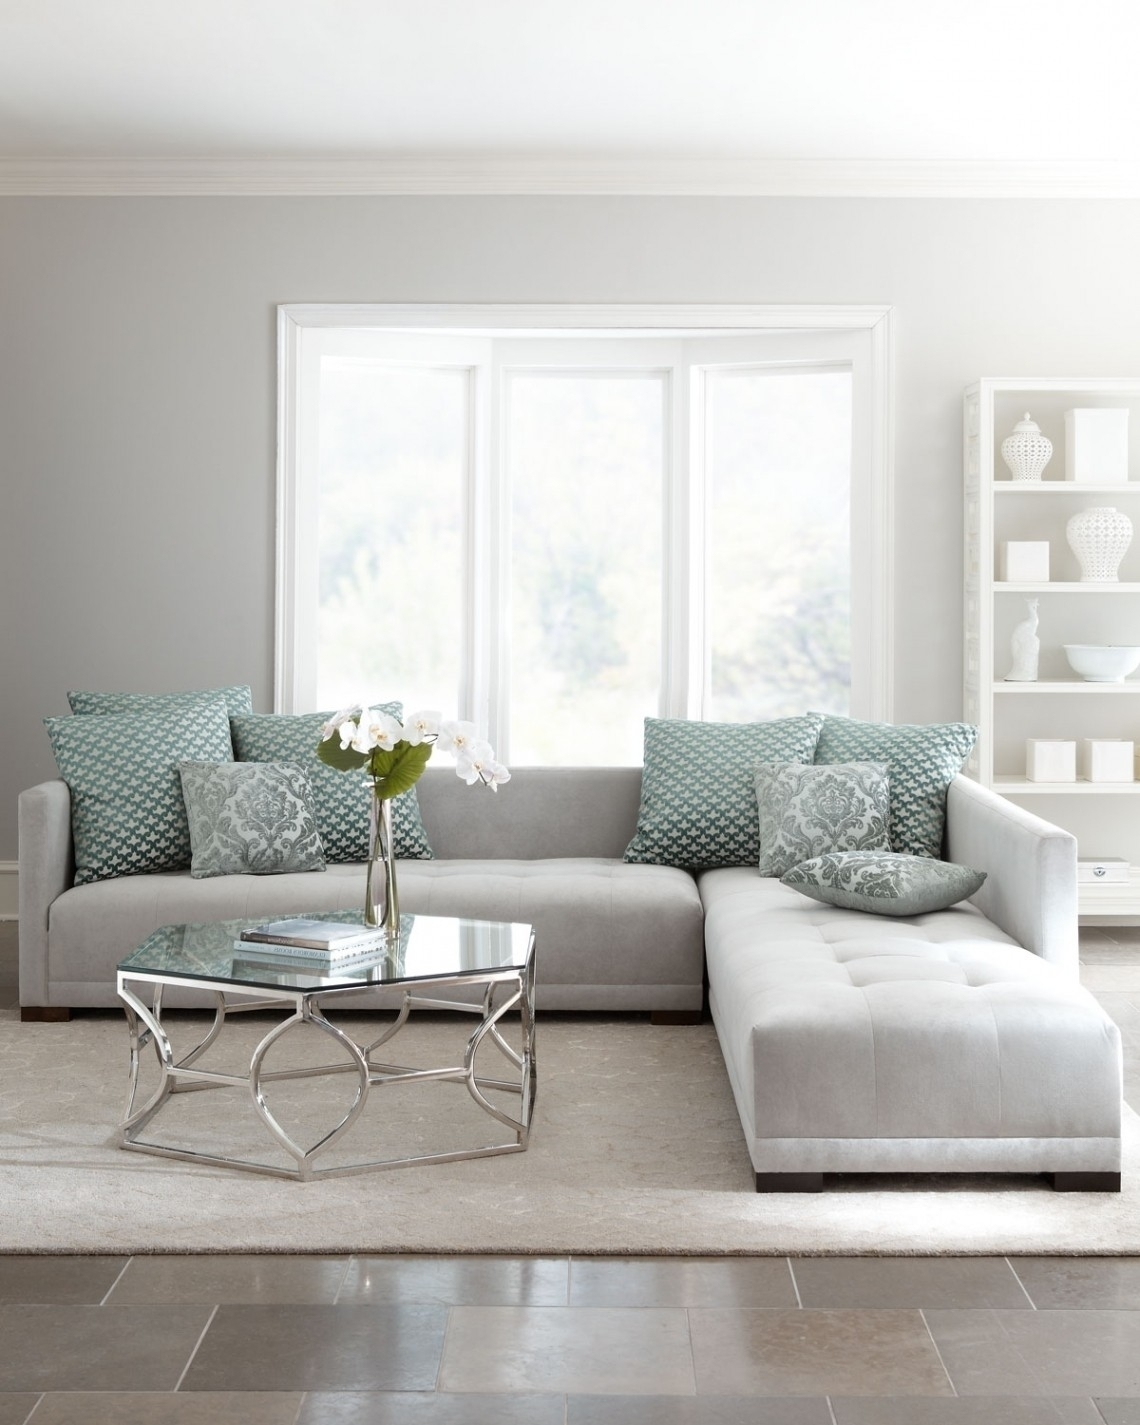 Light Grey Sectional - Implantologiabogota.co with Aquarius Light Grey 2 Piece Sectionals With Laf Chaise (Image 16 of 30)